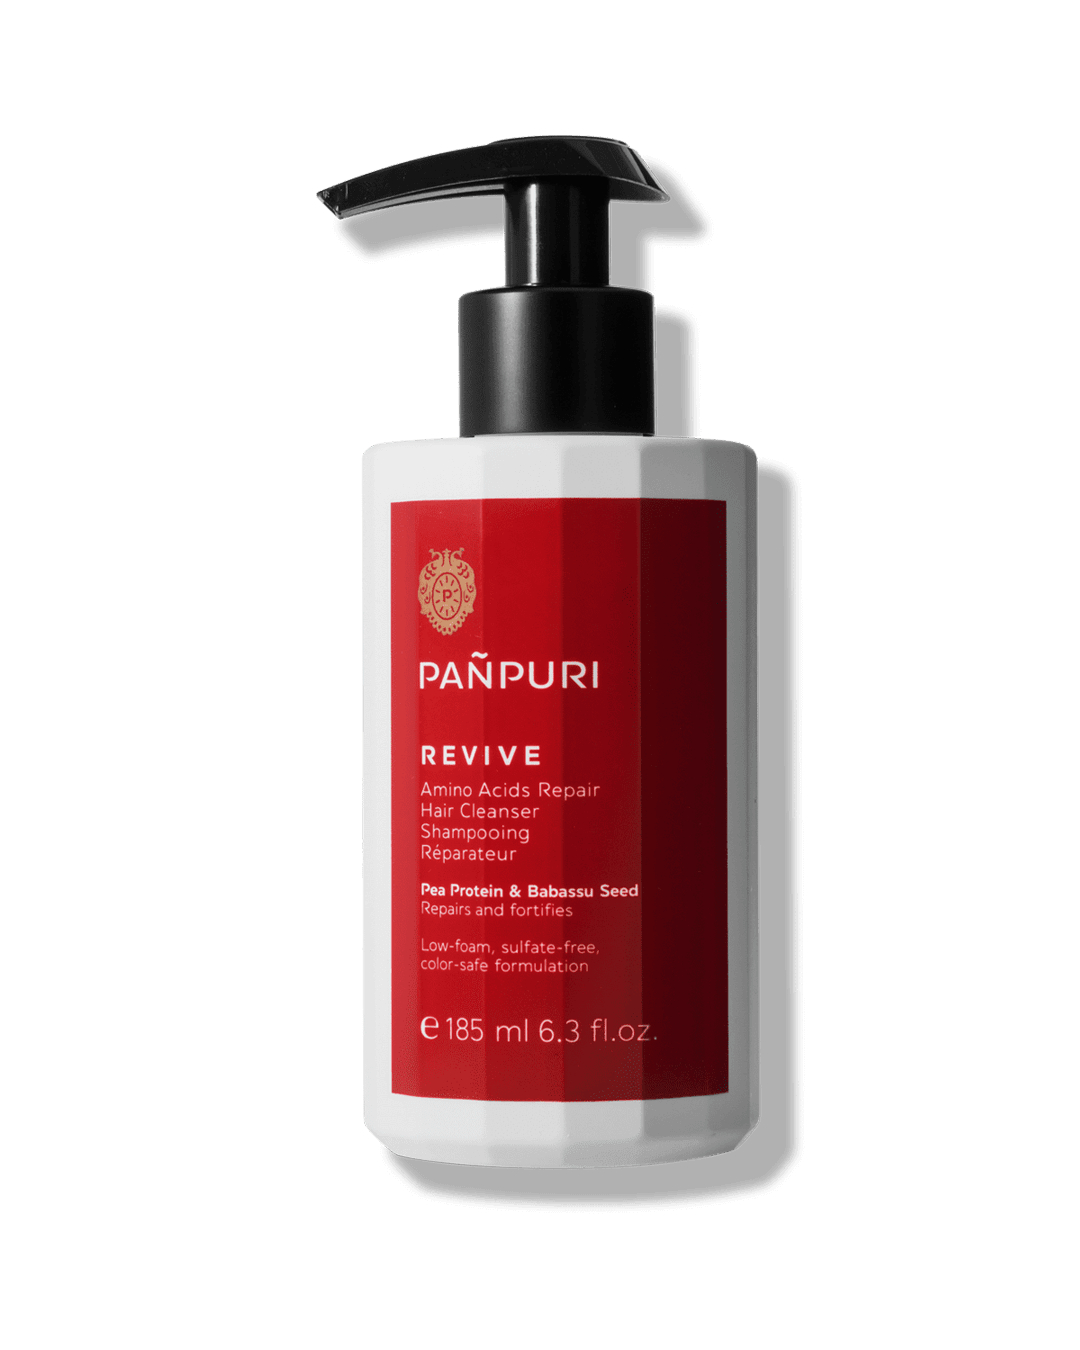 Revive Amino Acids Repair Hair Cleanser